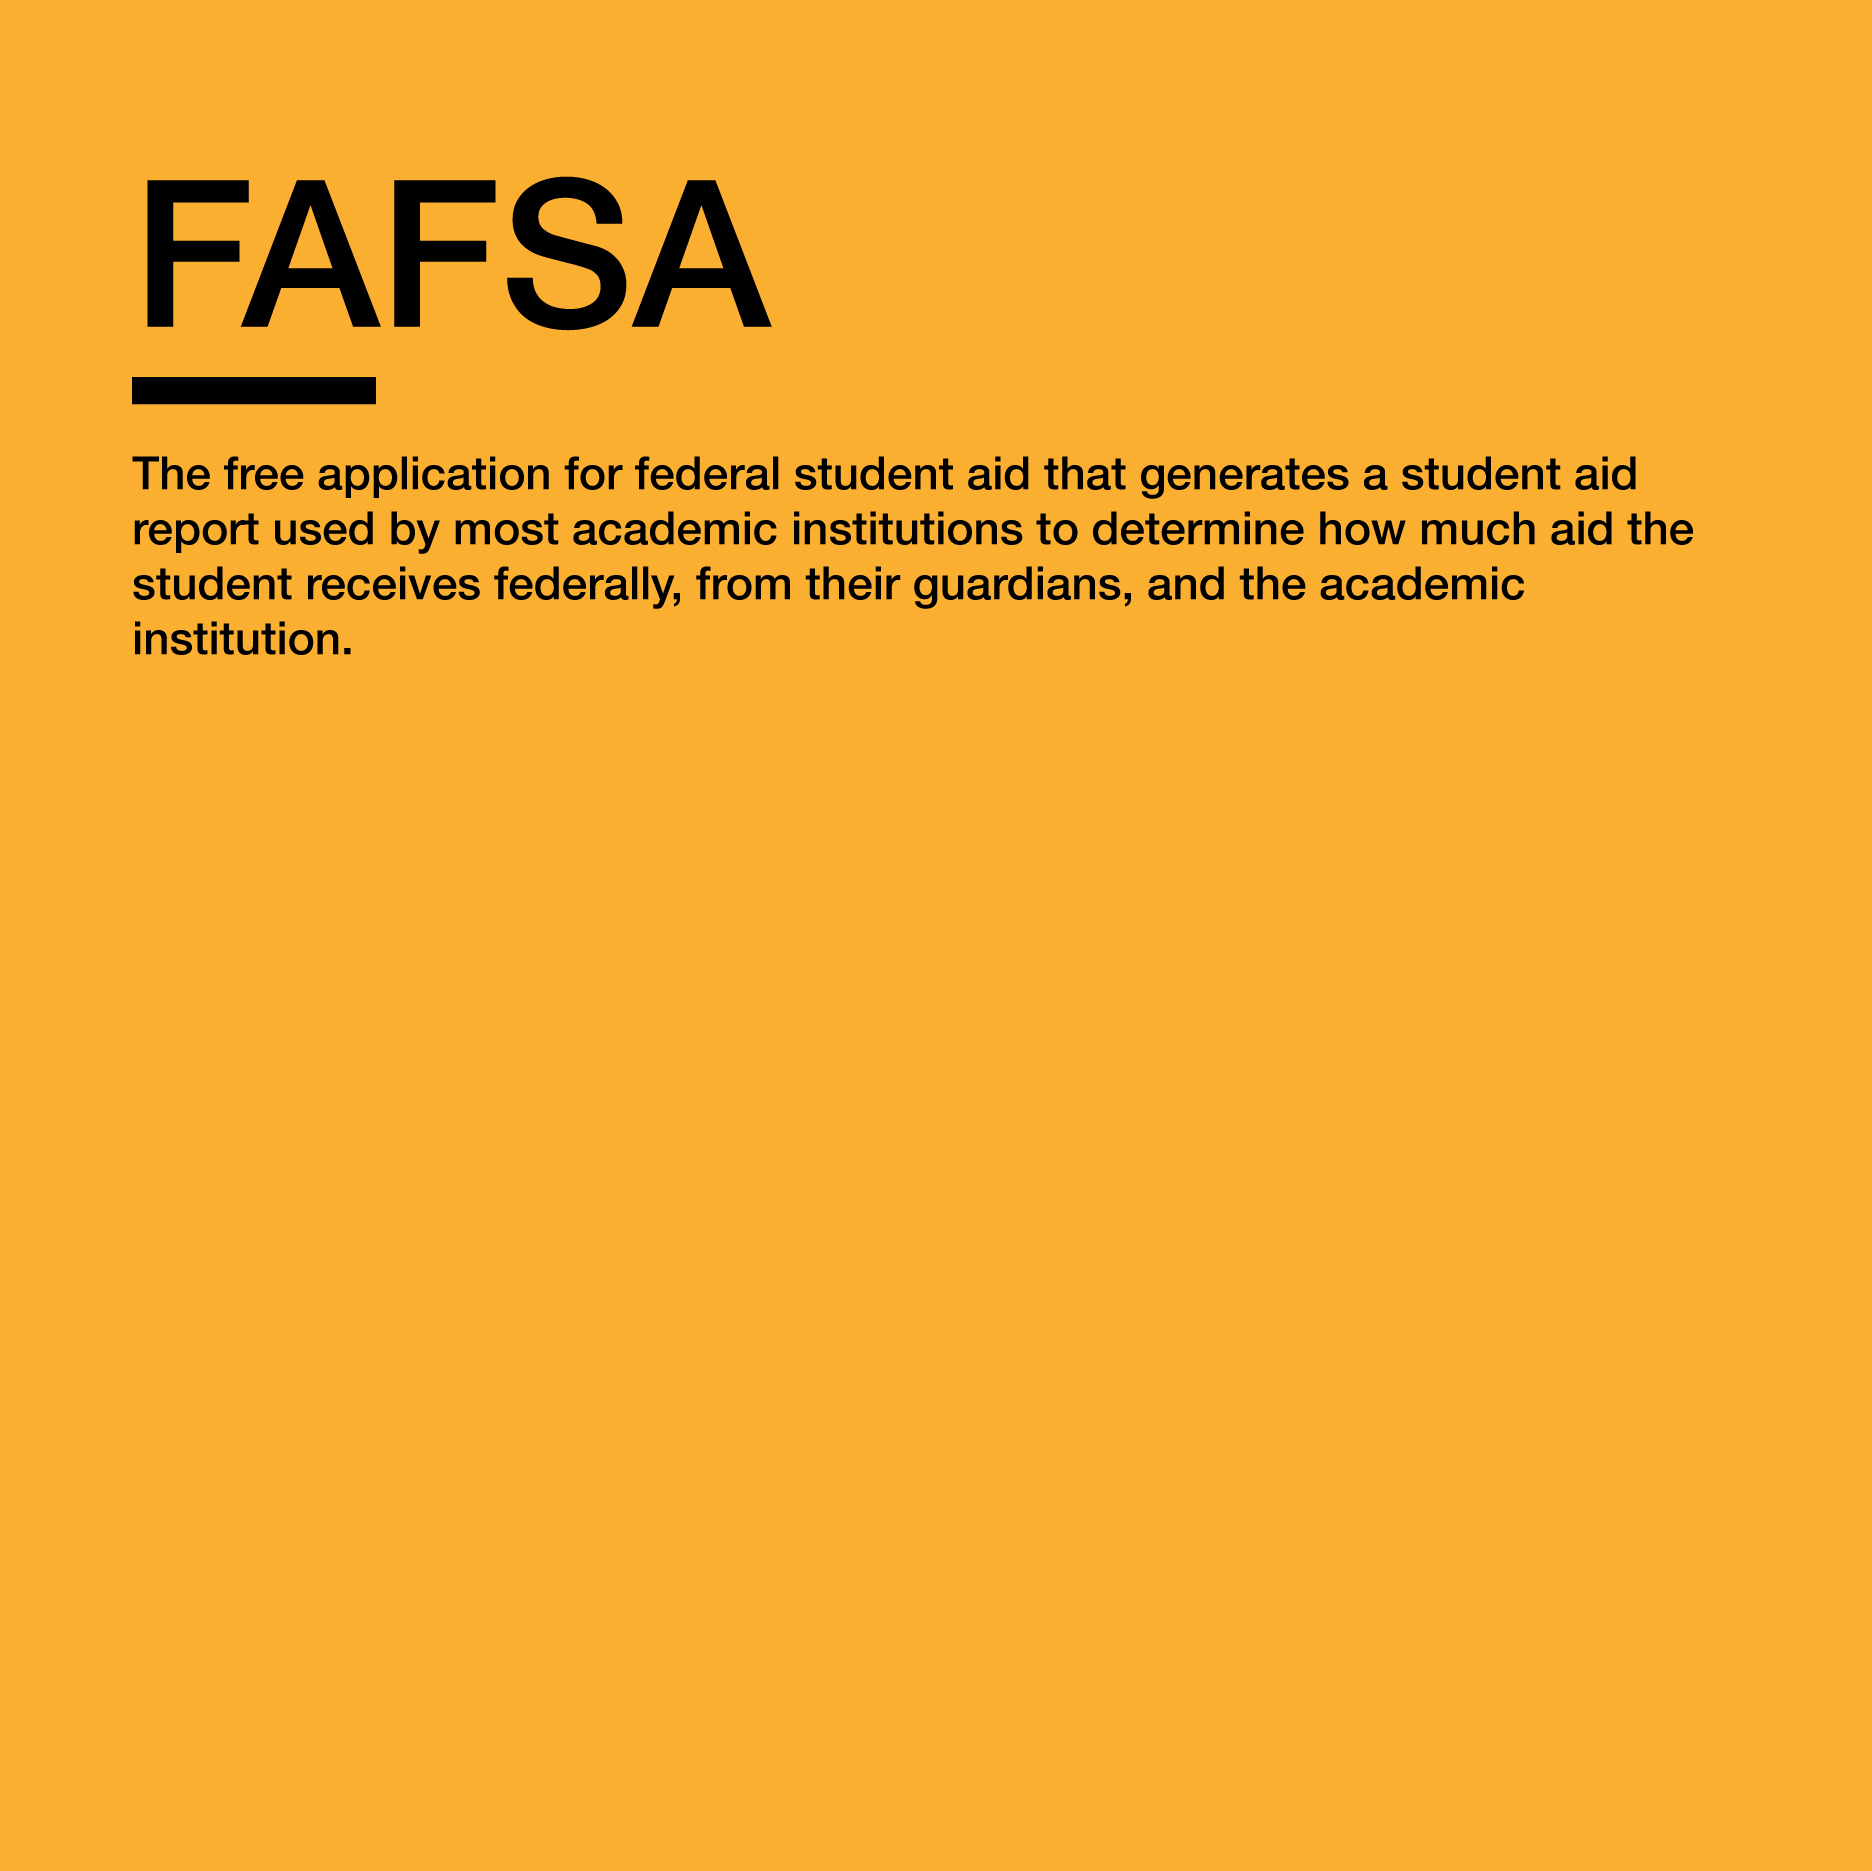 More info   https://studentaid.ed.gov/sa/fafsa/filling-out/help